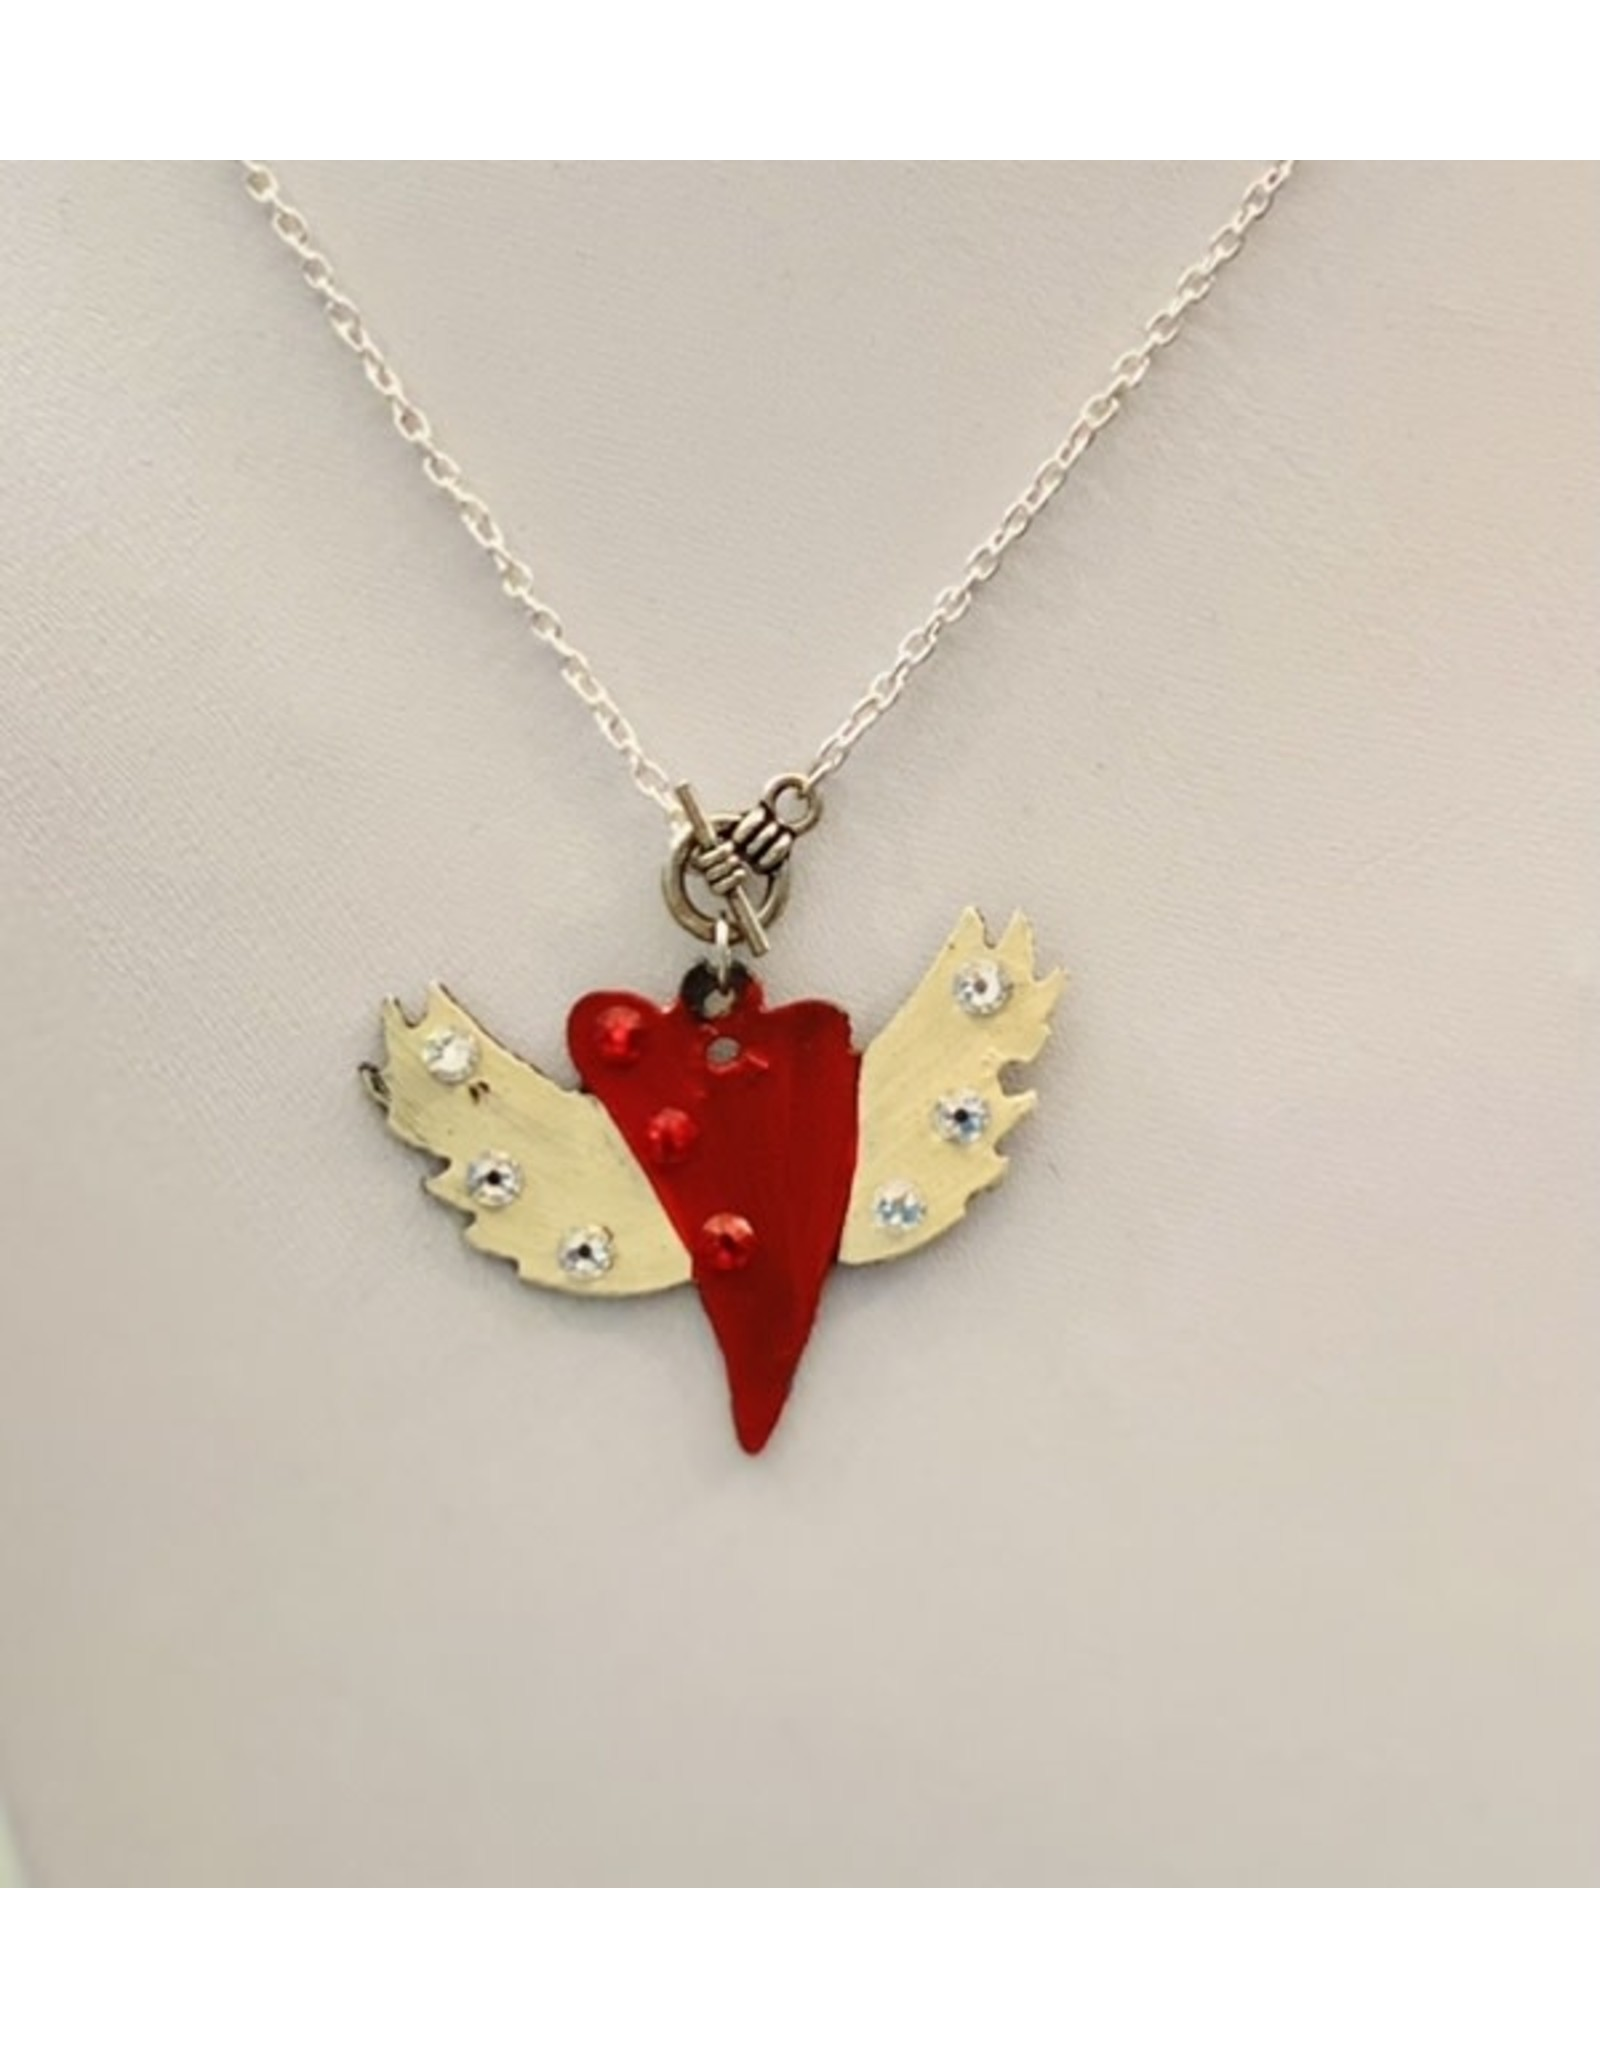 The Ritzy Gypsy SWEET HEART Necklace